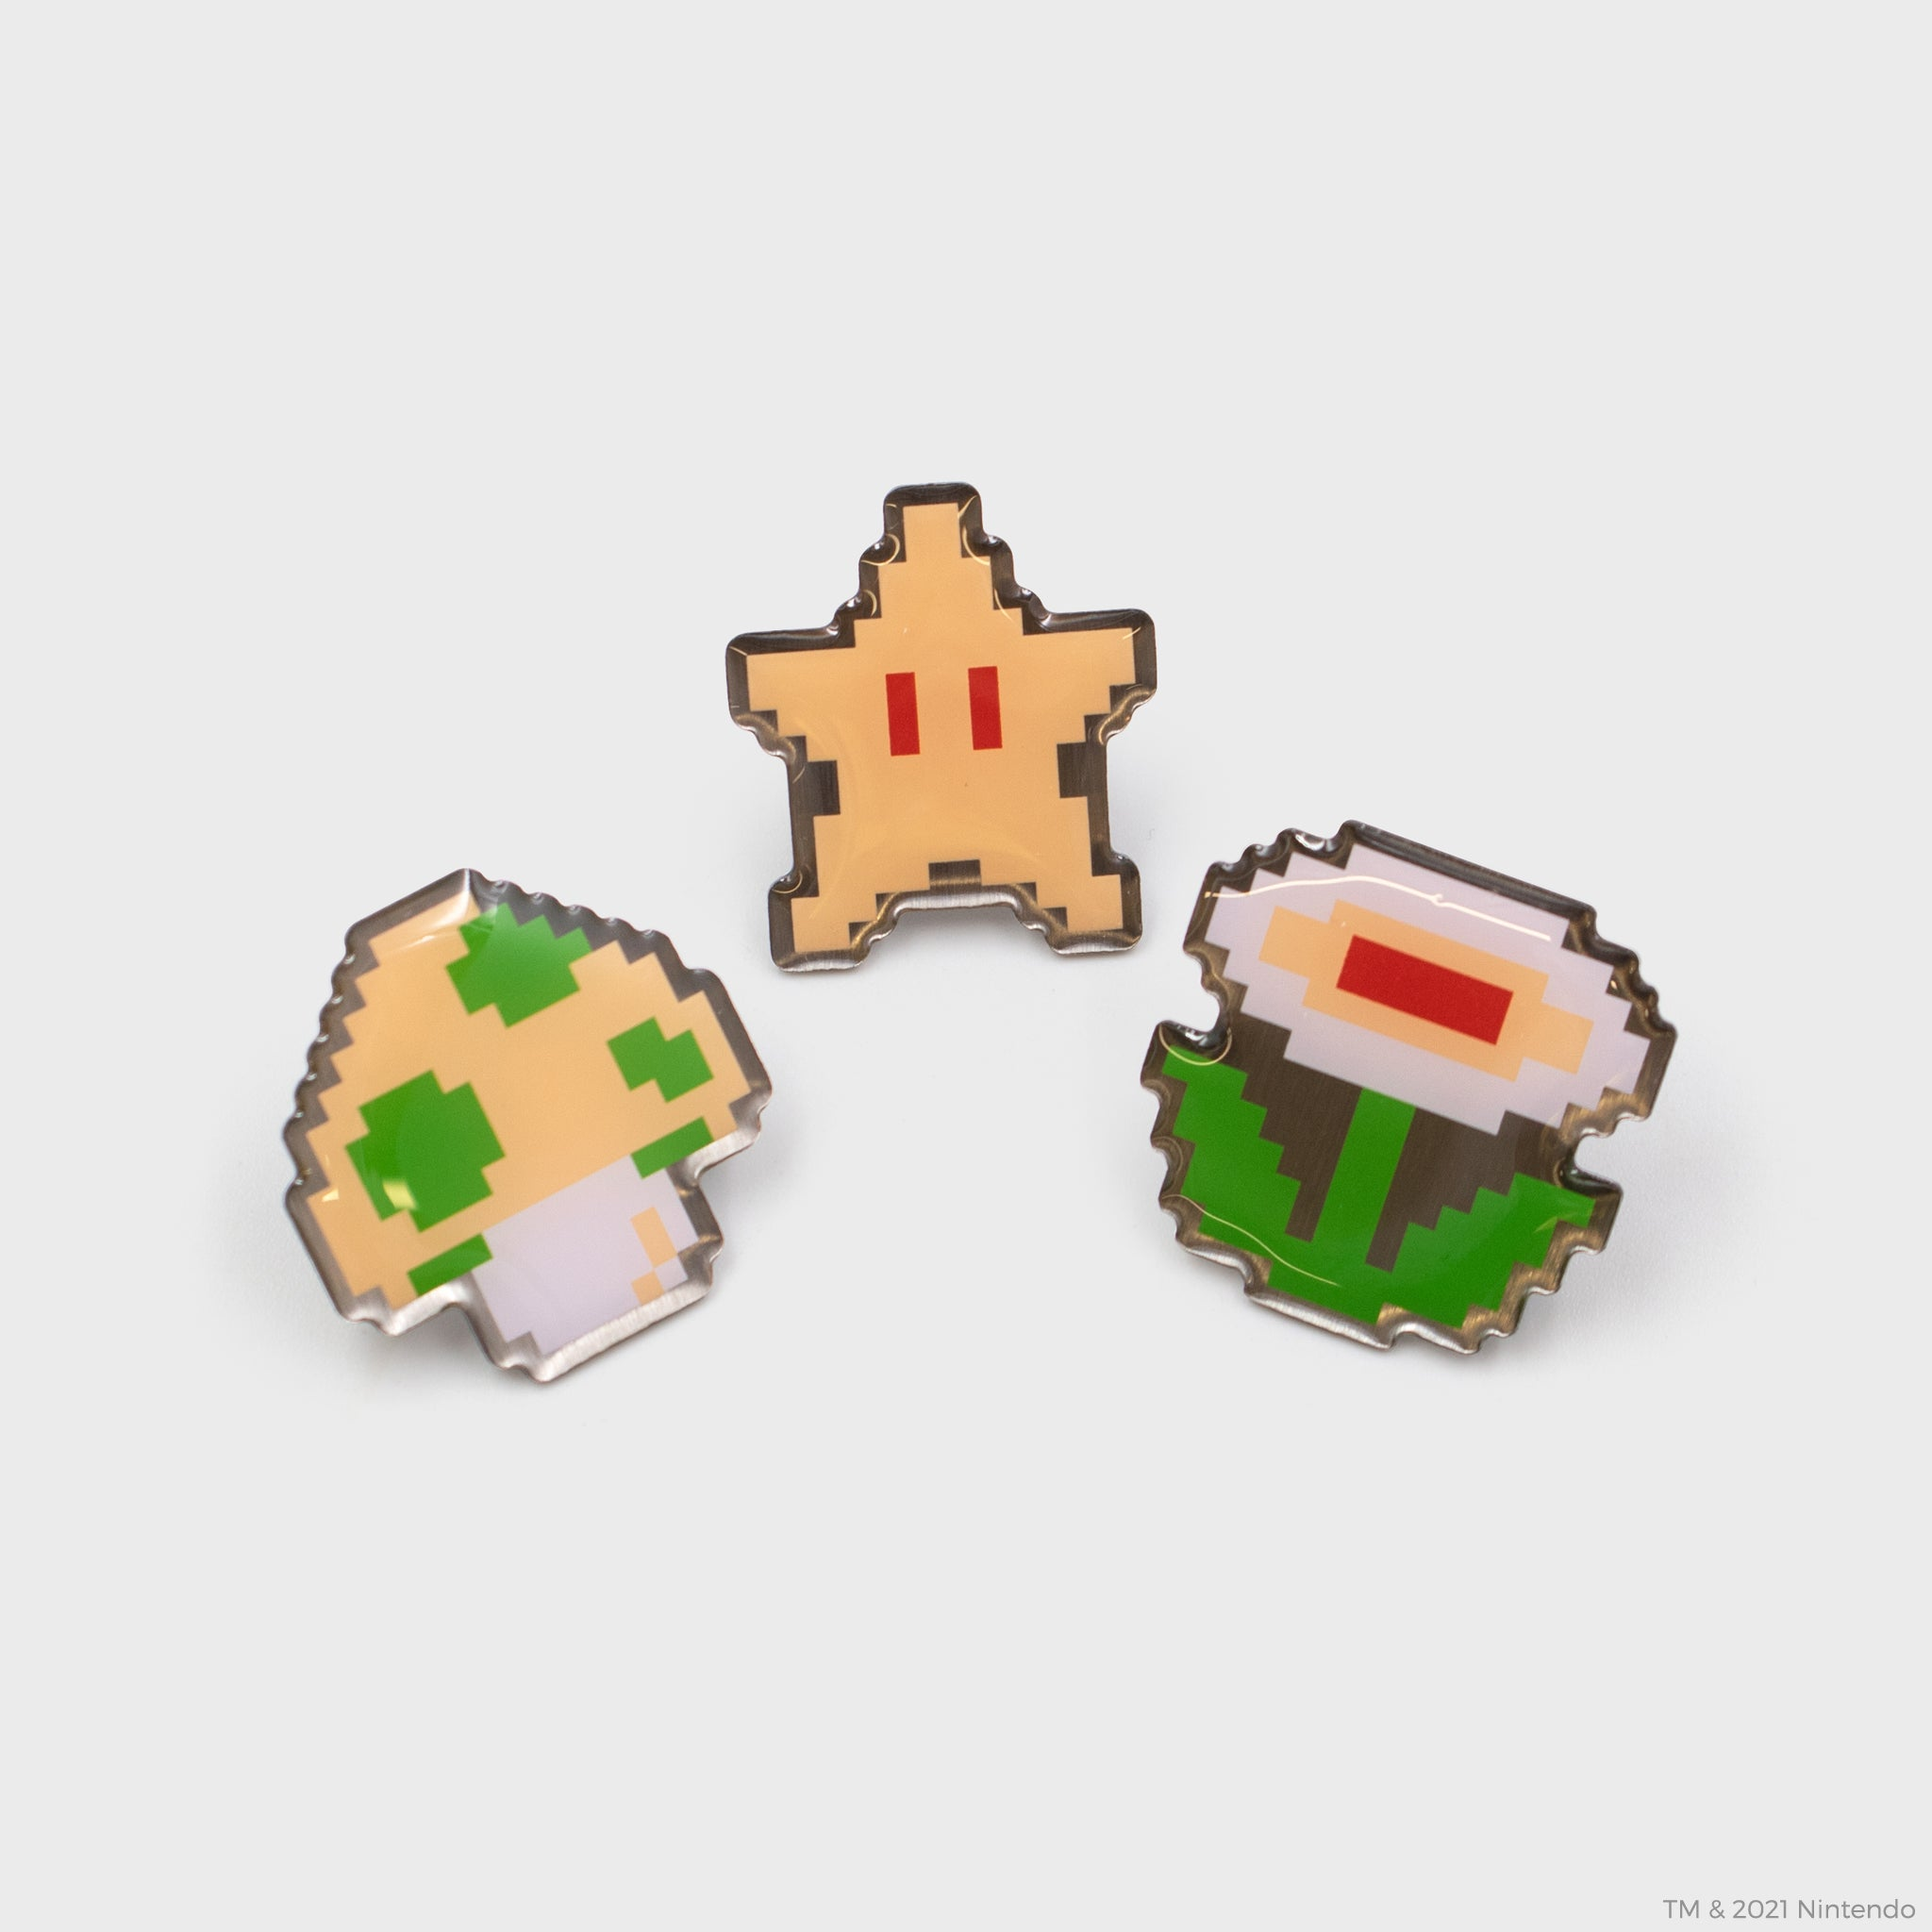 nintendo super mario bros. nes nintendo entertainment system collector's box 8-bit classic retro video games gaming pins pin set power-ups 1-up mushroom fire flower star culturefly